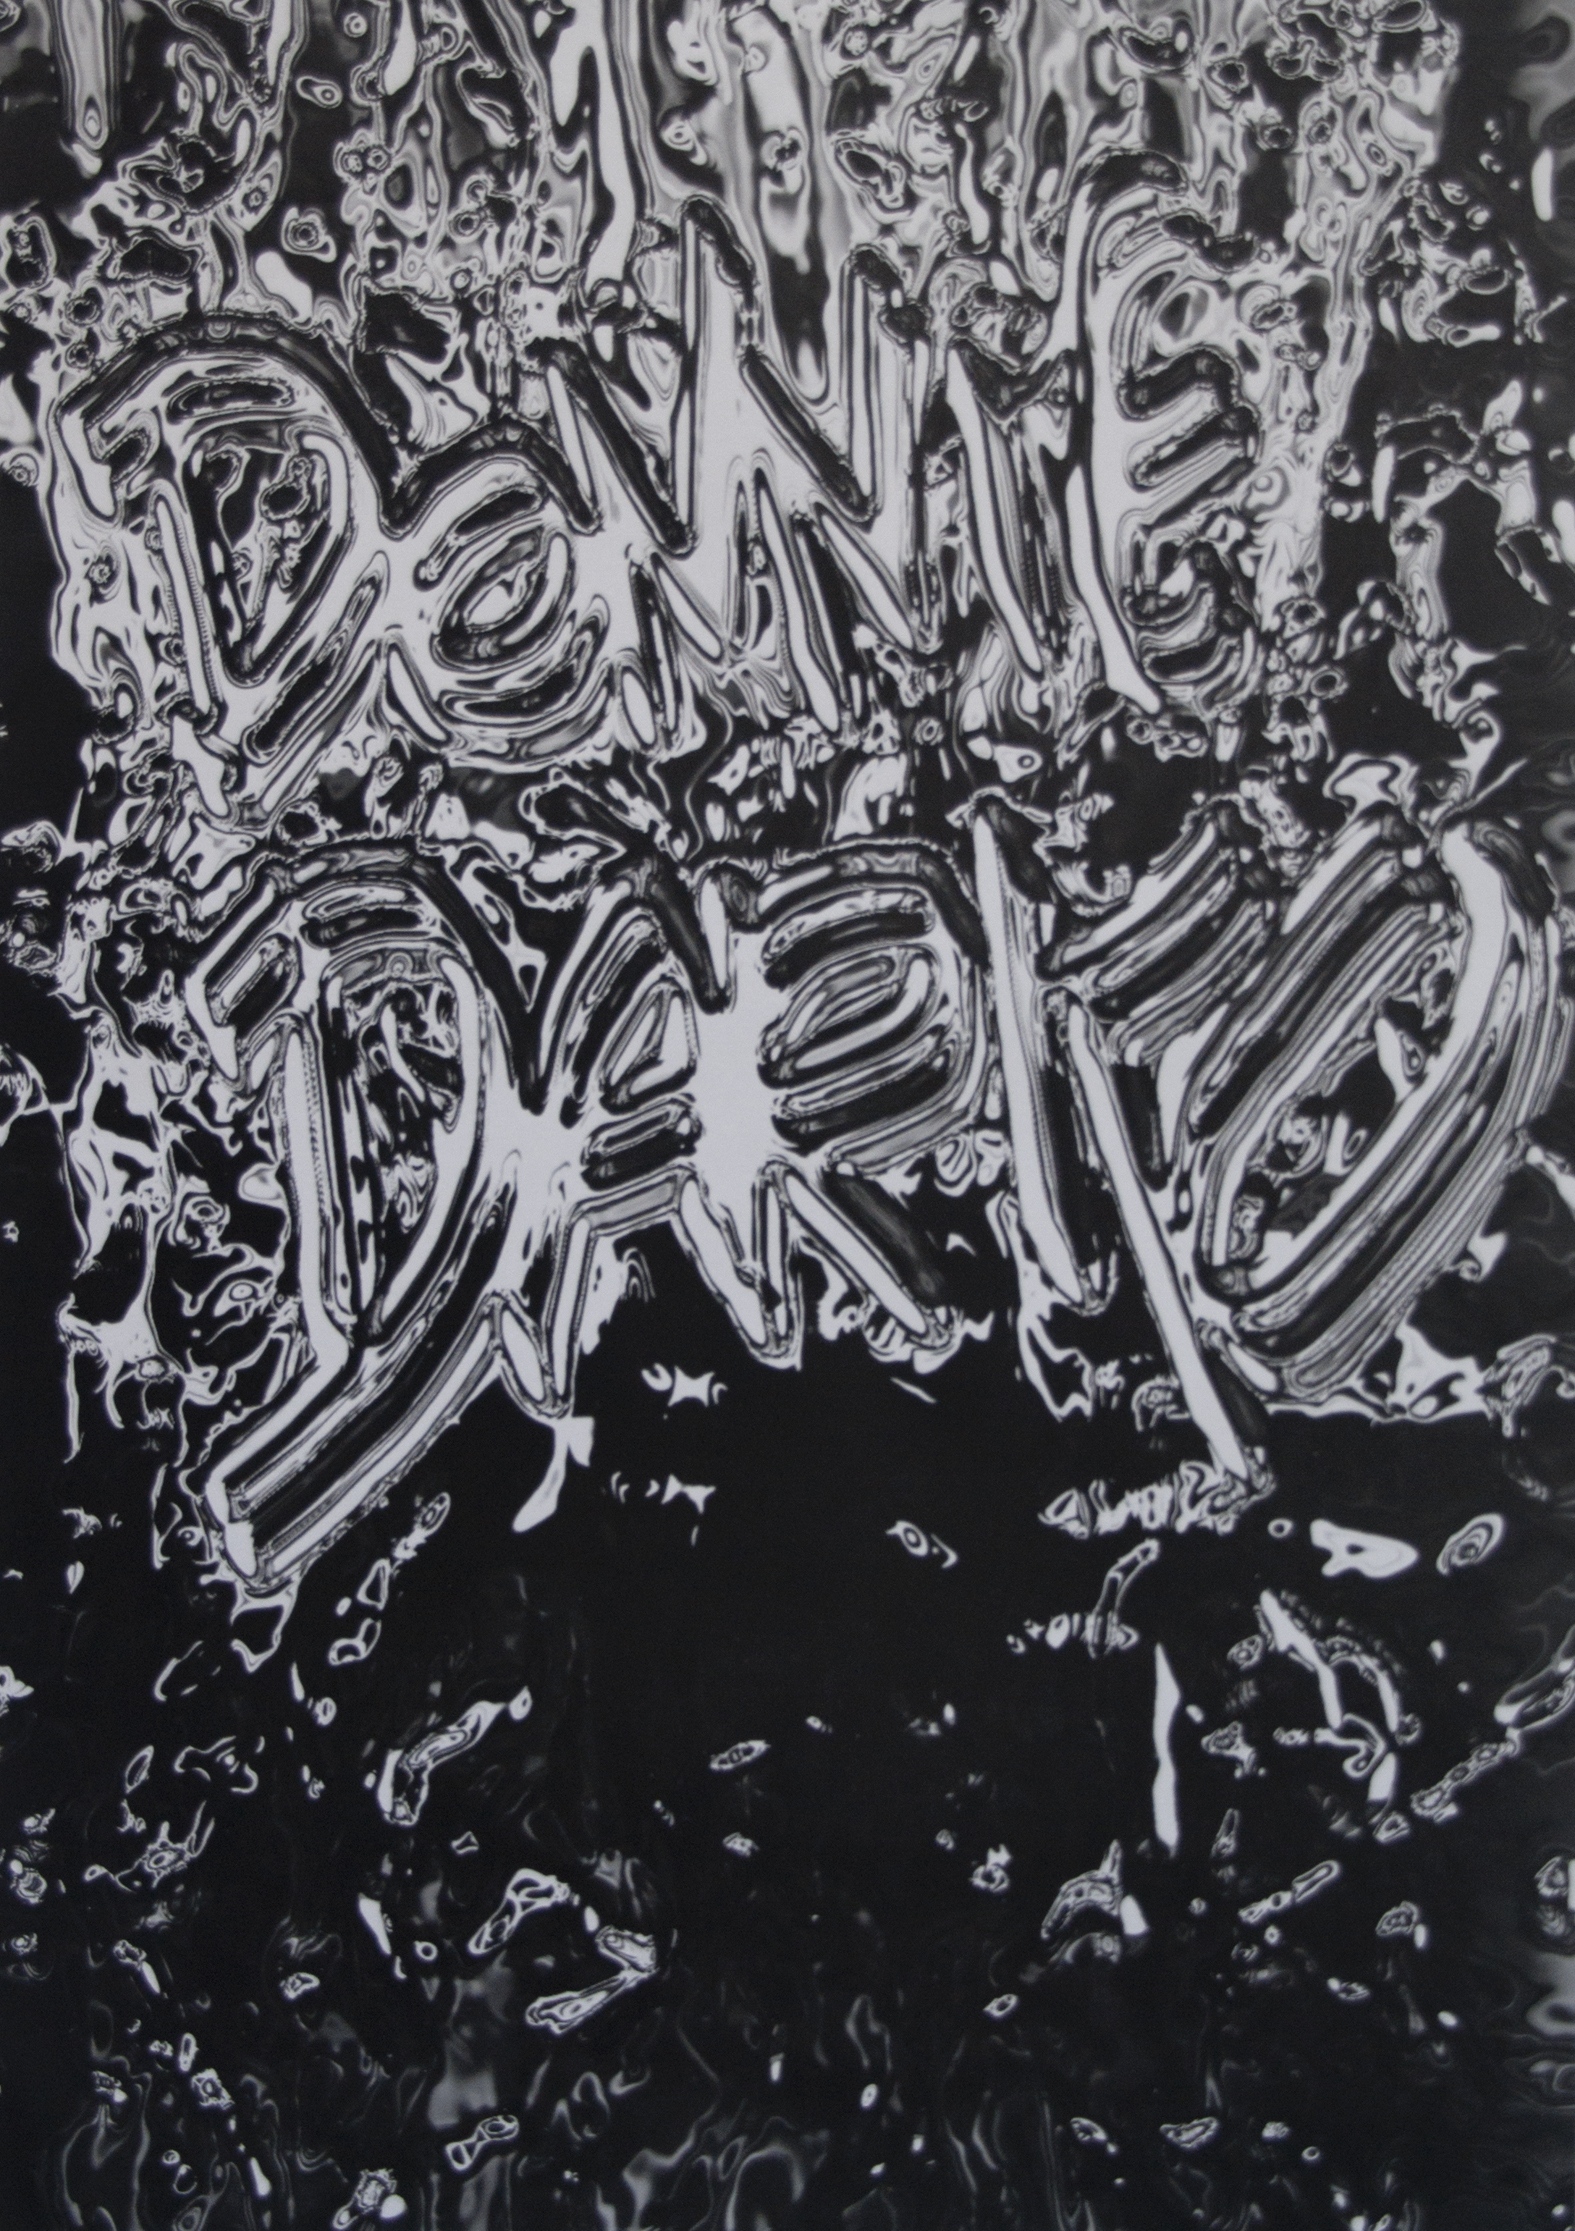 donnie1